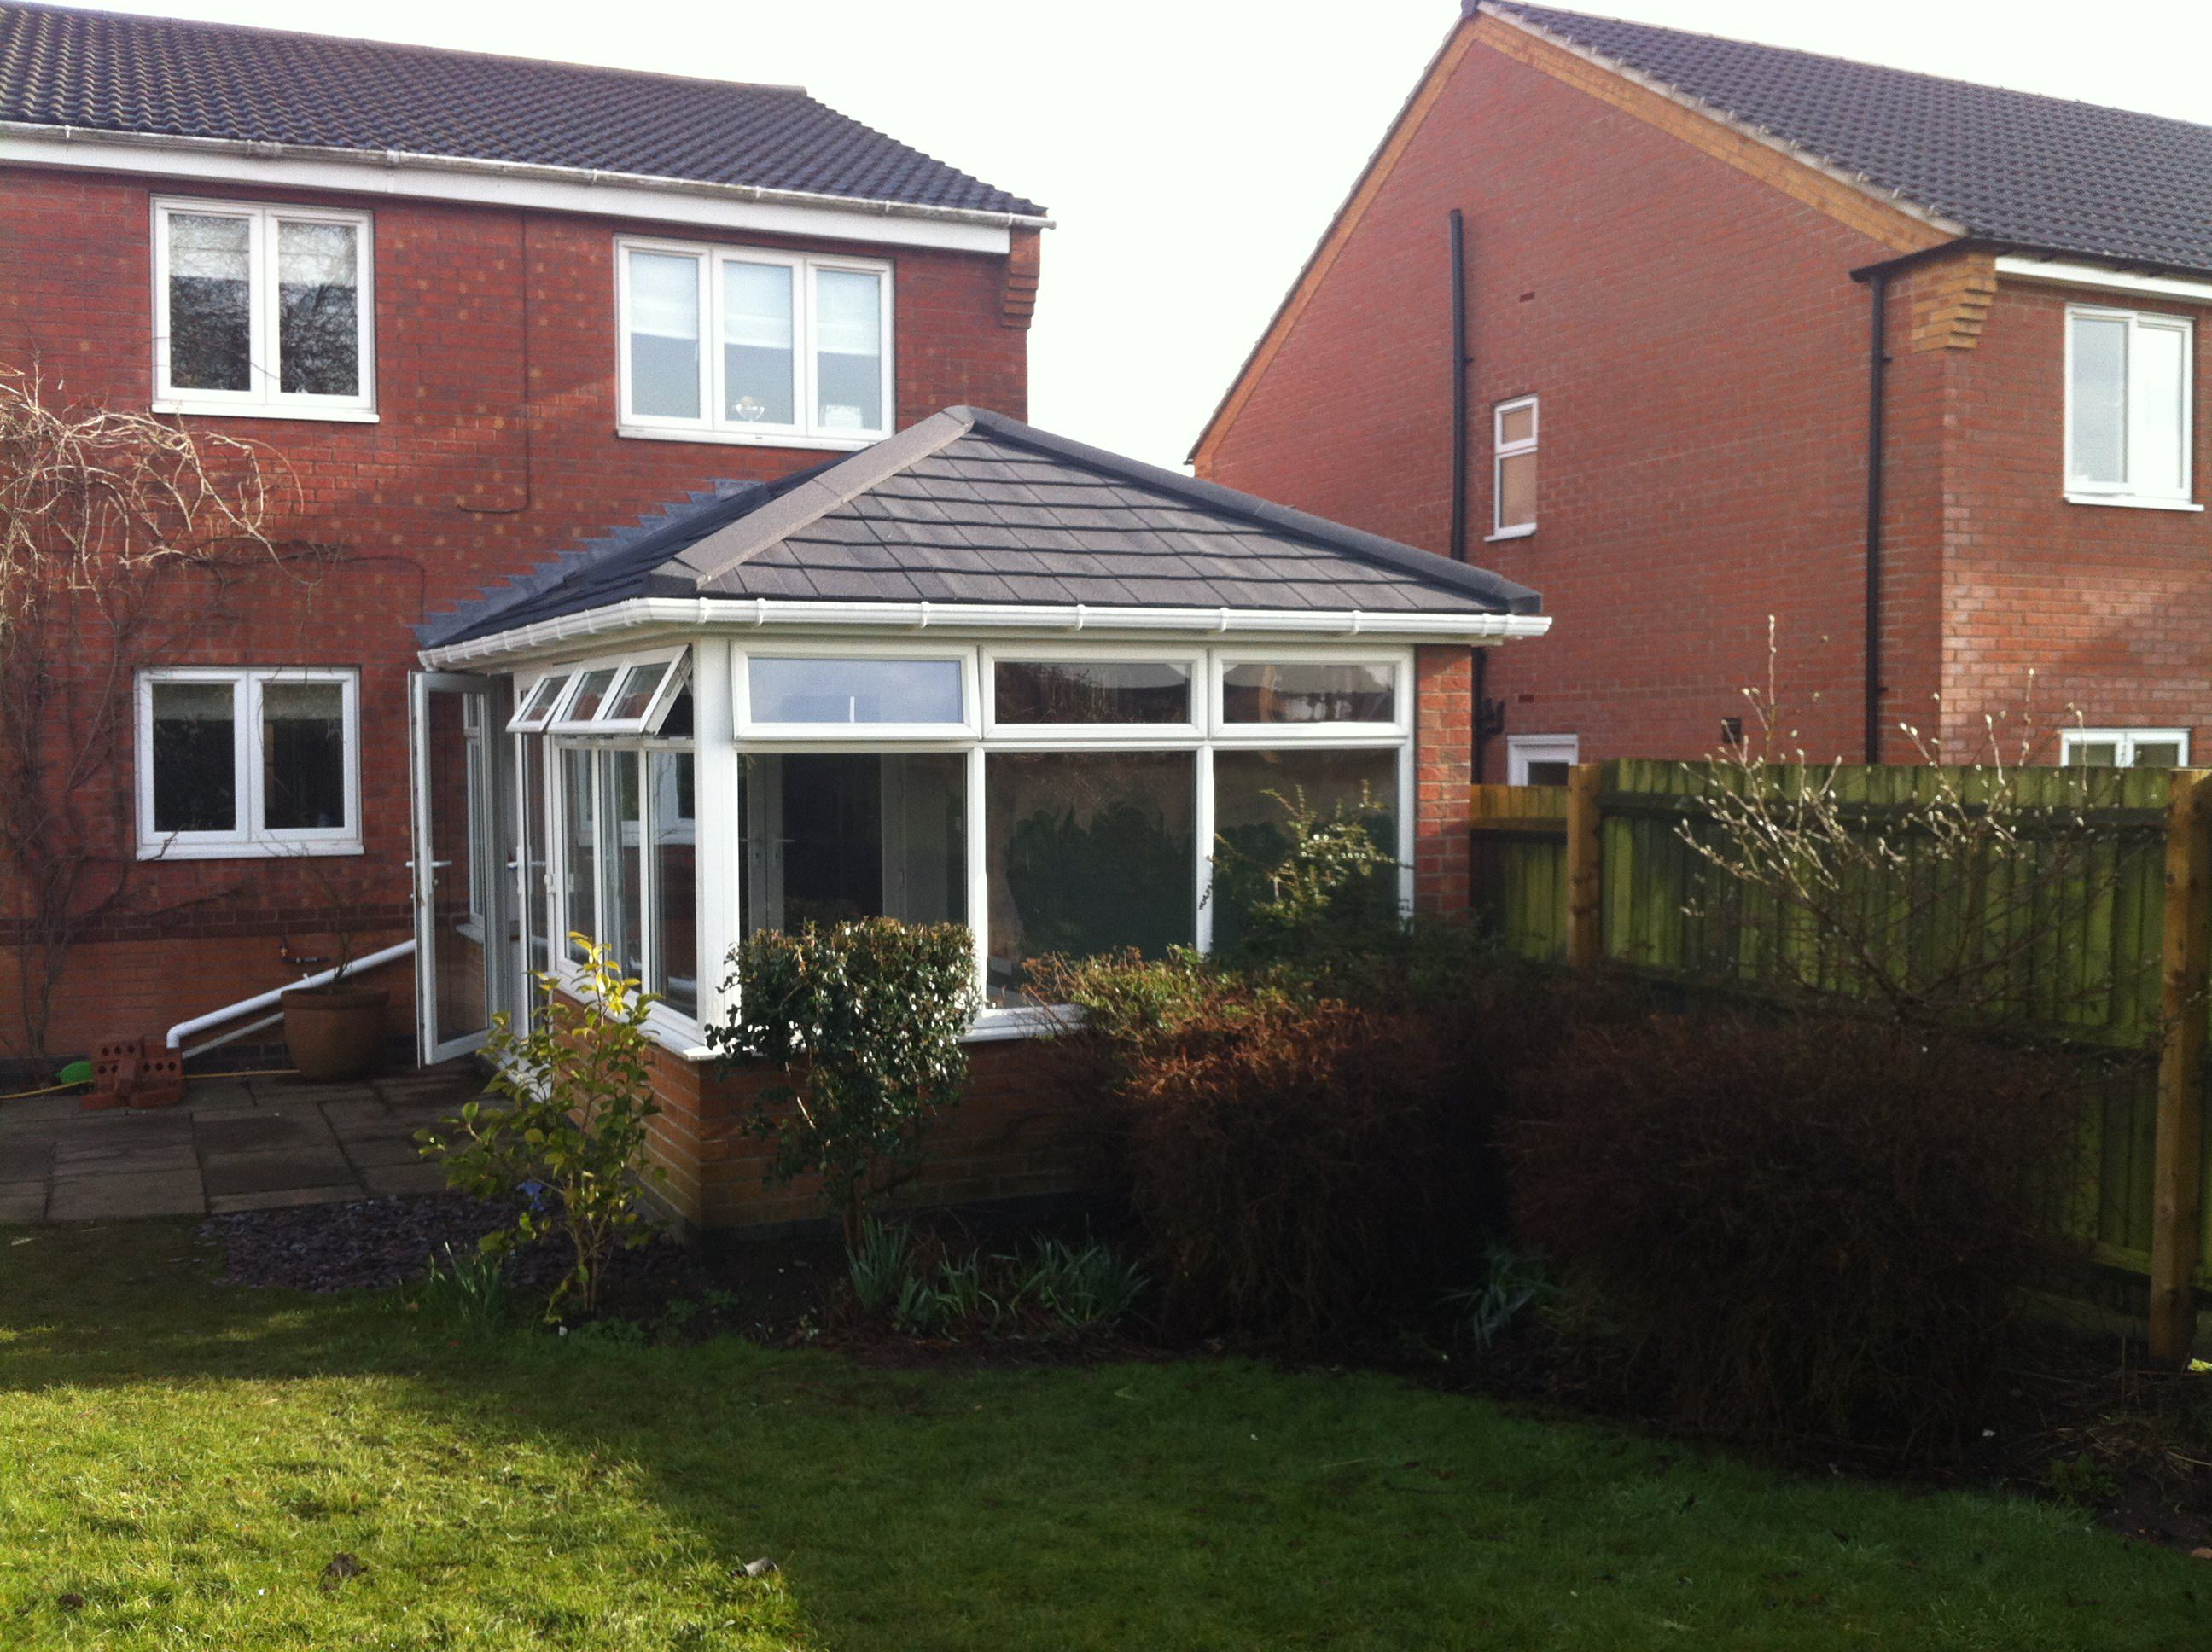 Lifestyle Home Solutions Ltd Supalite Tiled Roof Systems